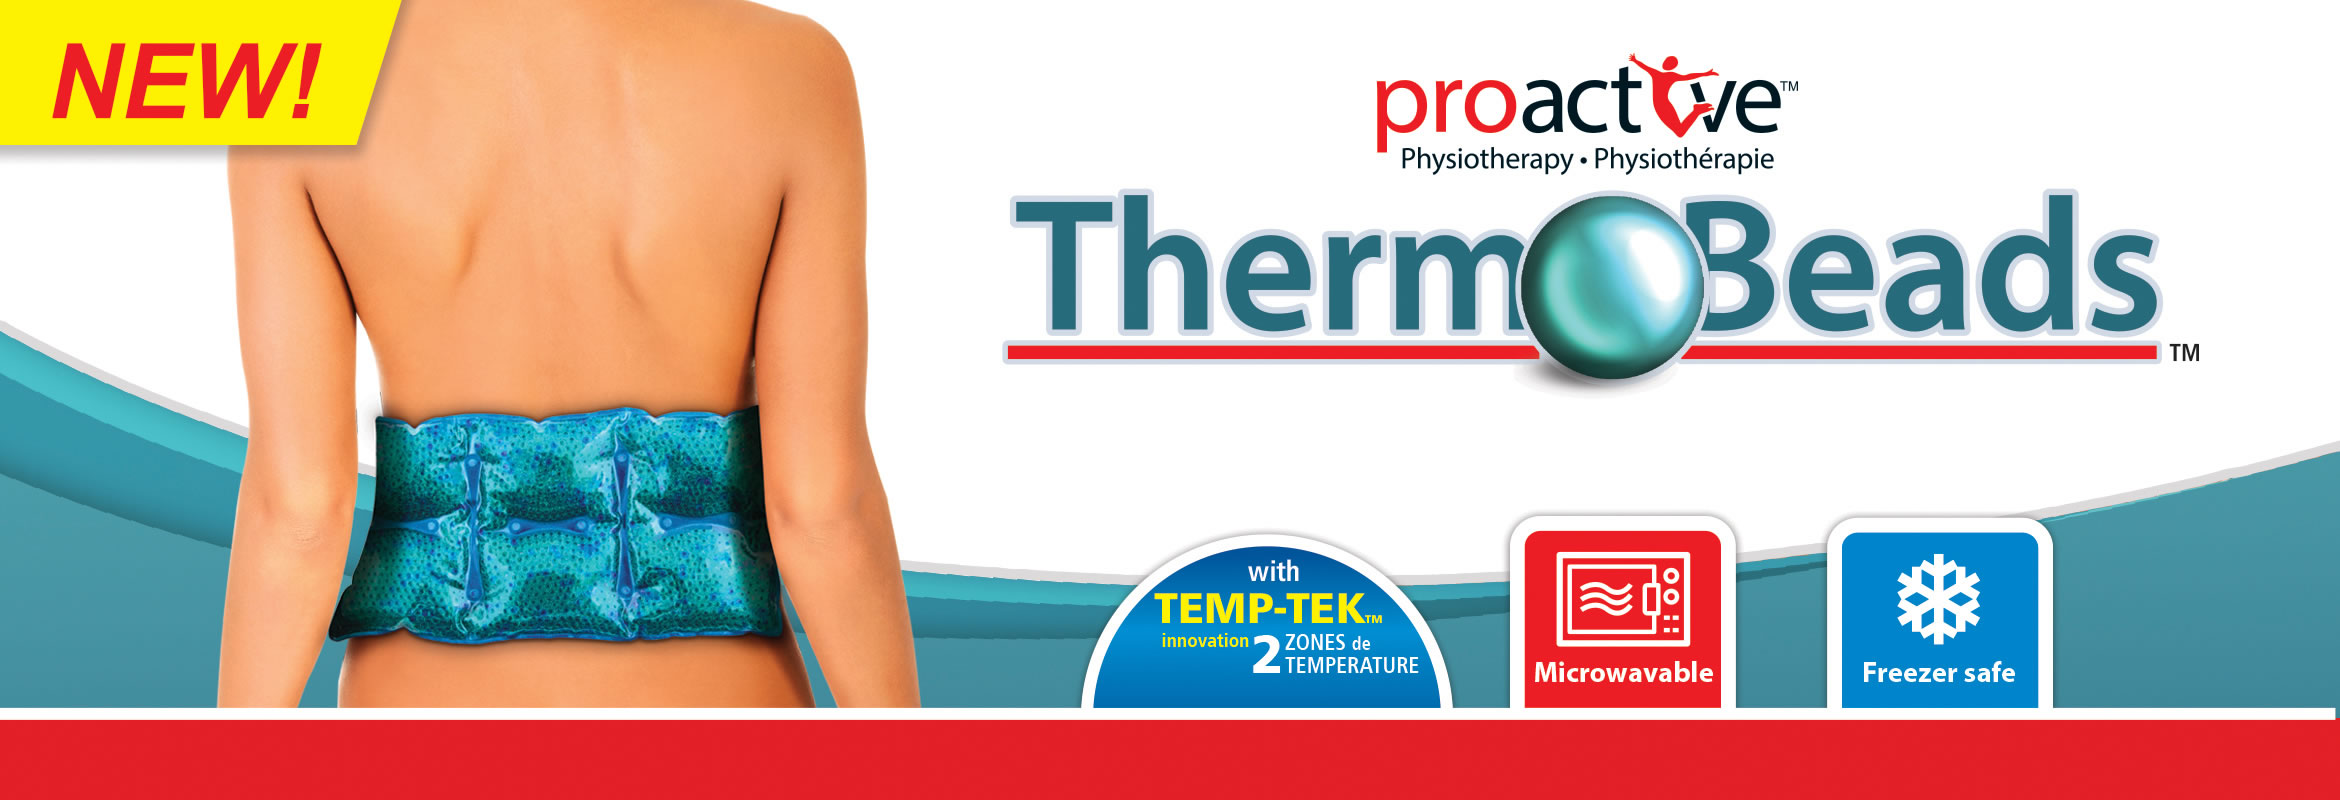 Therm-O-Beads™ offers 20 minutes of highly effective hot or cold therapy.